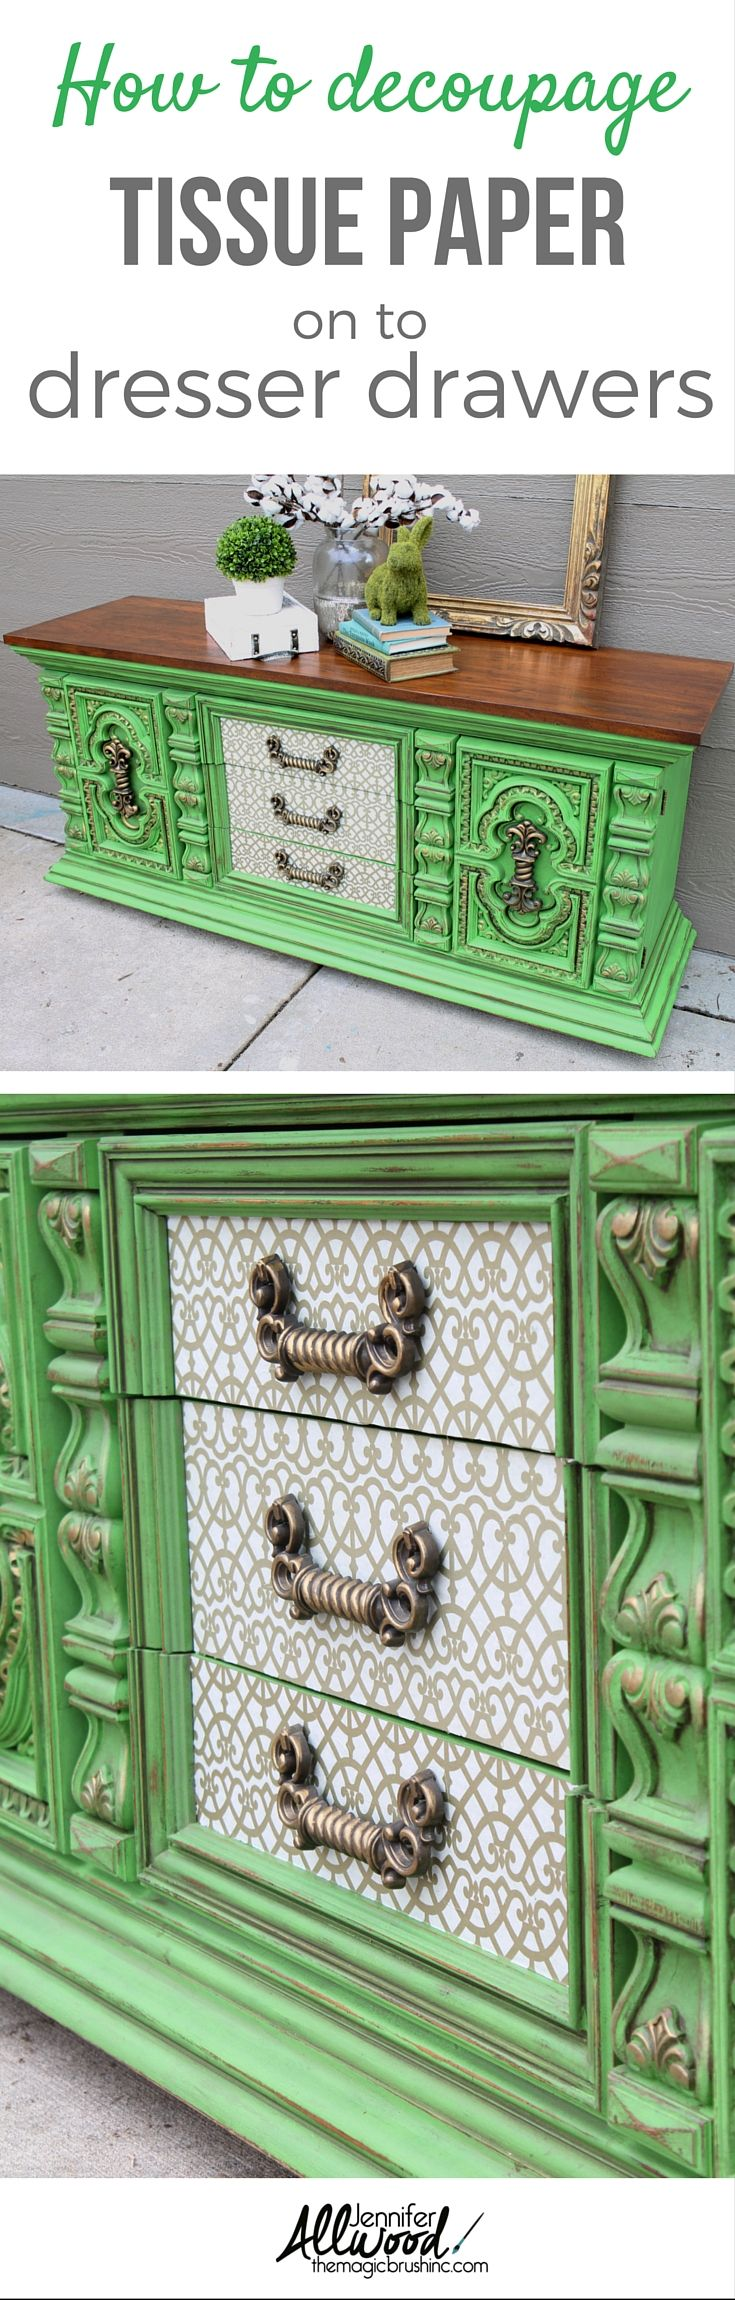 Info's : Tutorial on how to decoupage tissue paper on to dresser drawers. Check out this furniture makeover using a  bold green apple color and decoupaged tissued drawers. More Painting tips, color advice and DIY projects at theMagicBrushinc.com